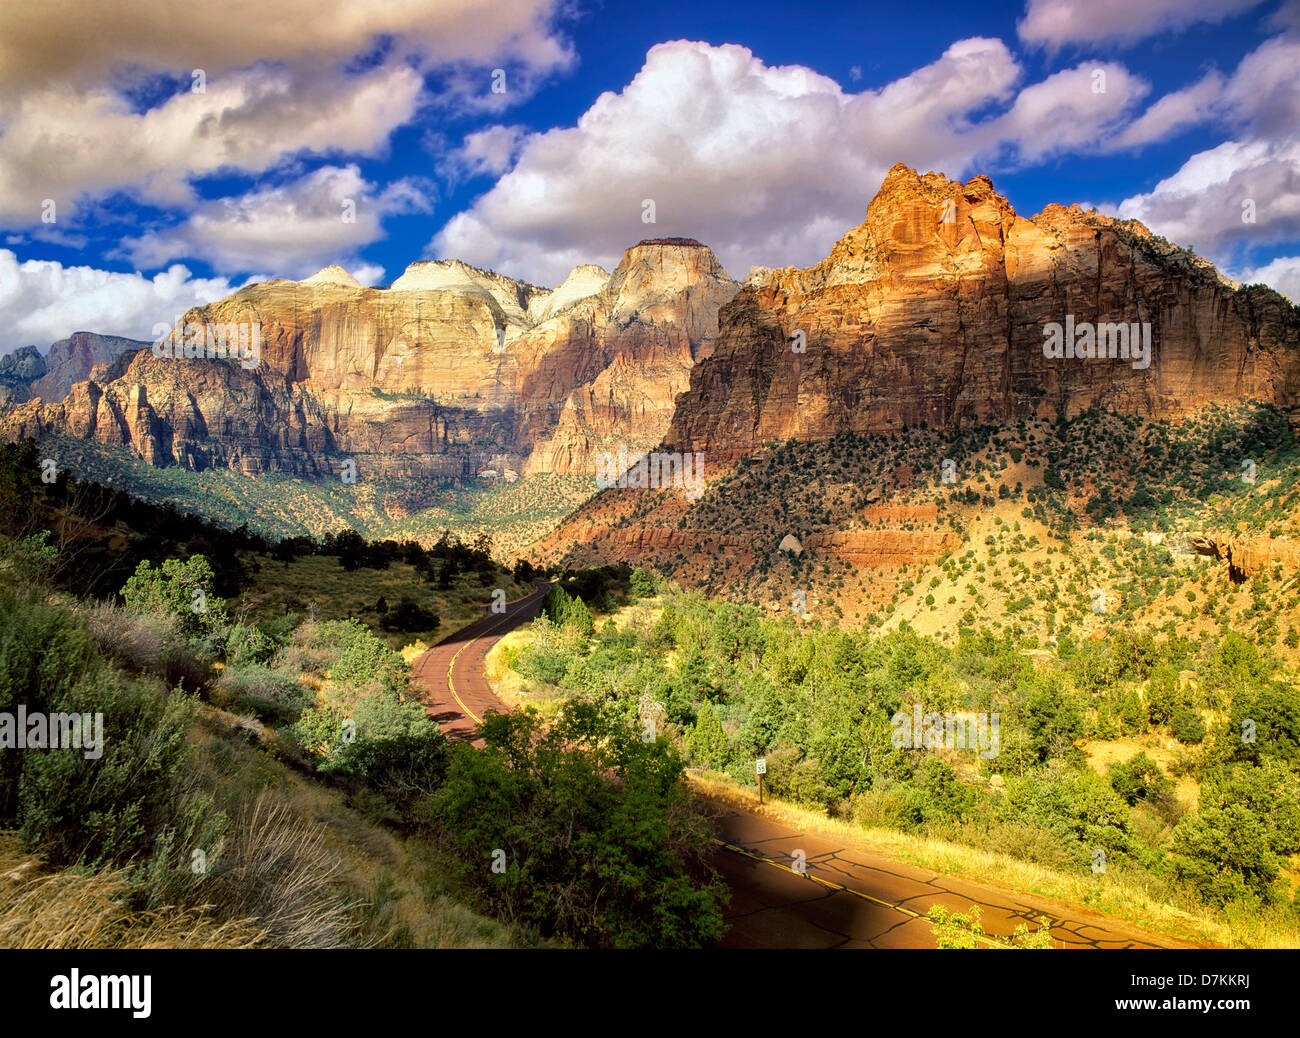 Road in Zion National Park with clouds, Utah - Stock Image